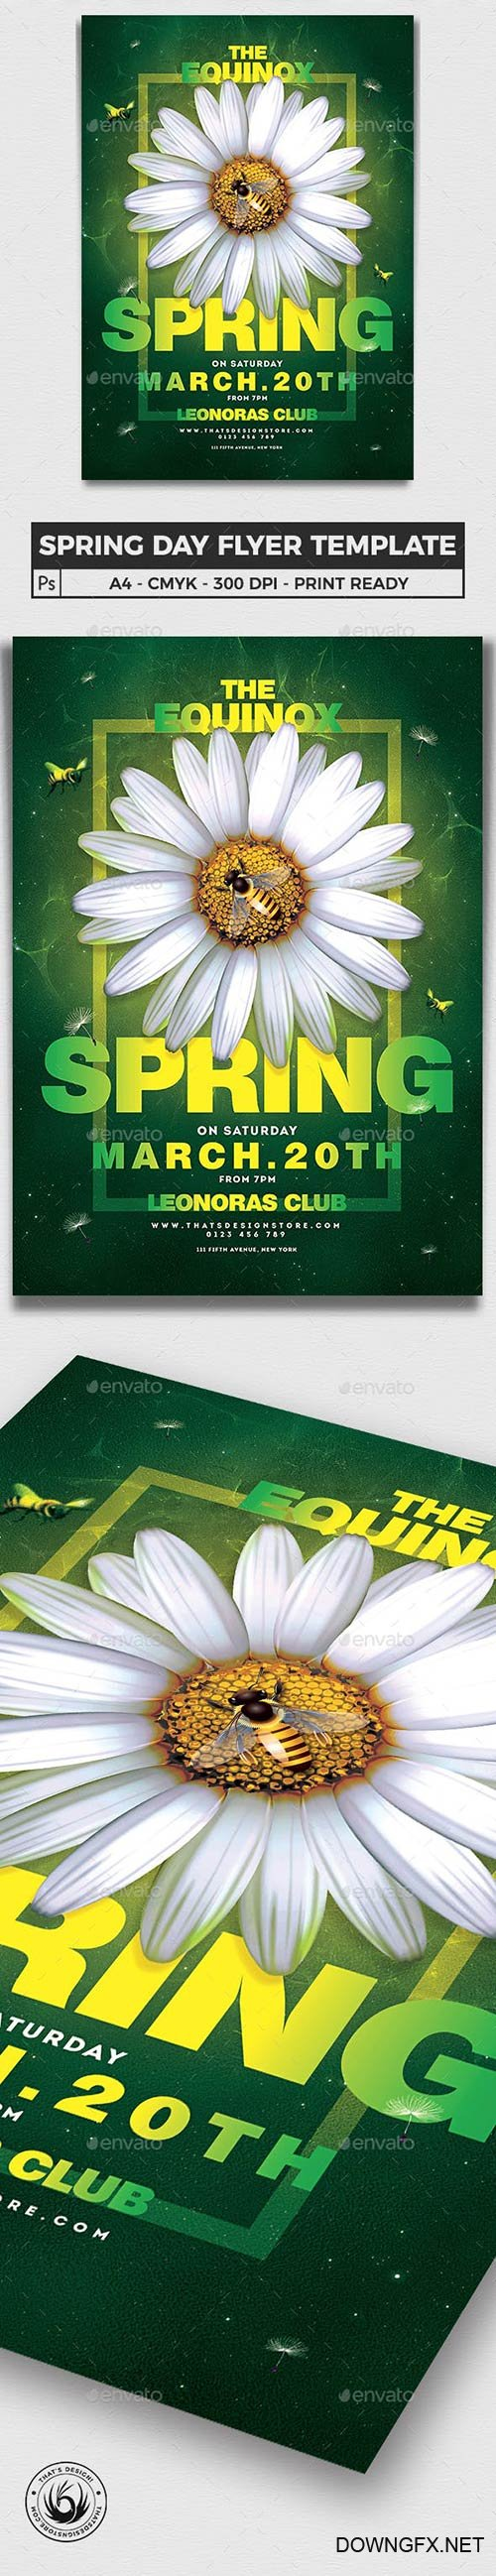 Graphicriver - Spring Day Flyer Template V3 23131740